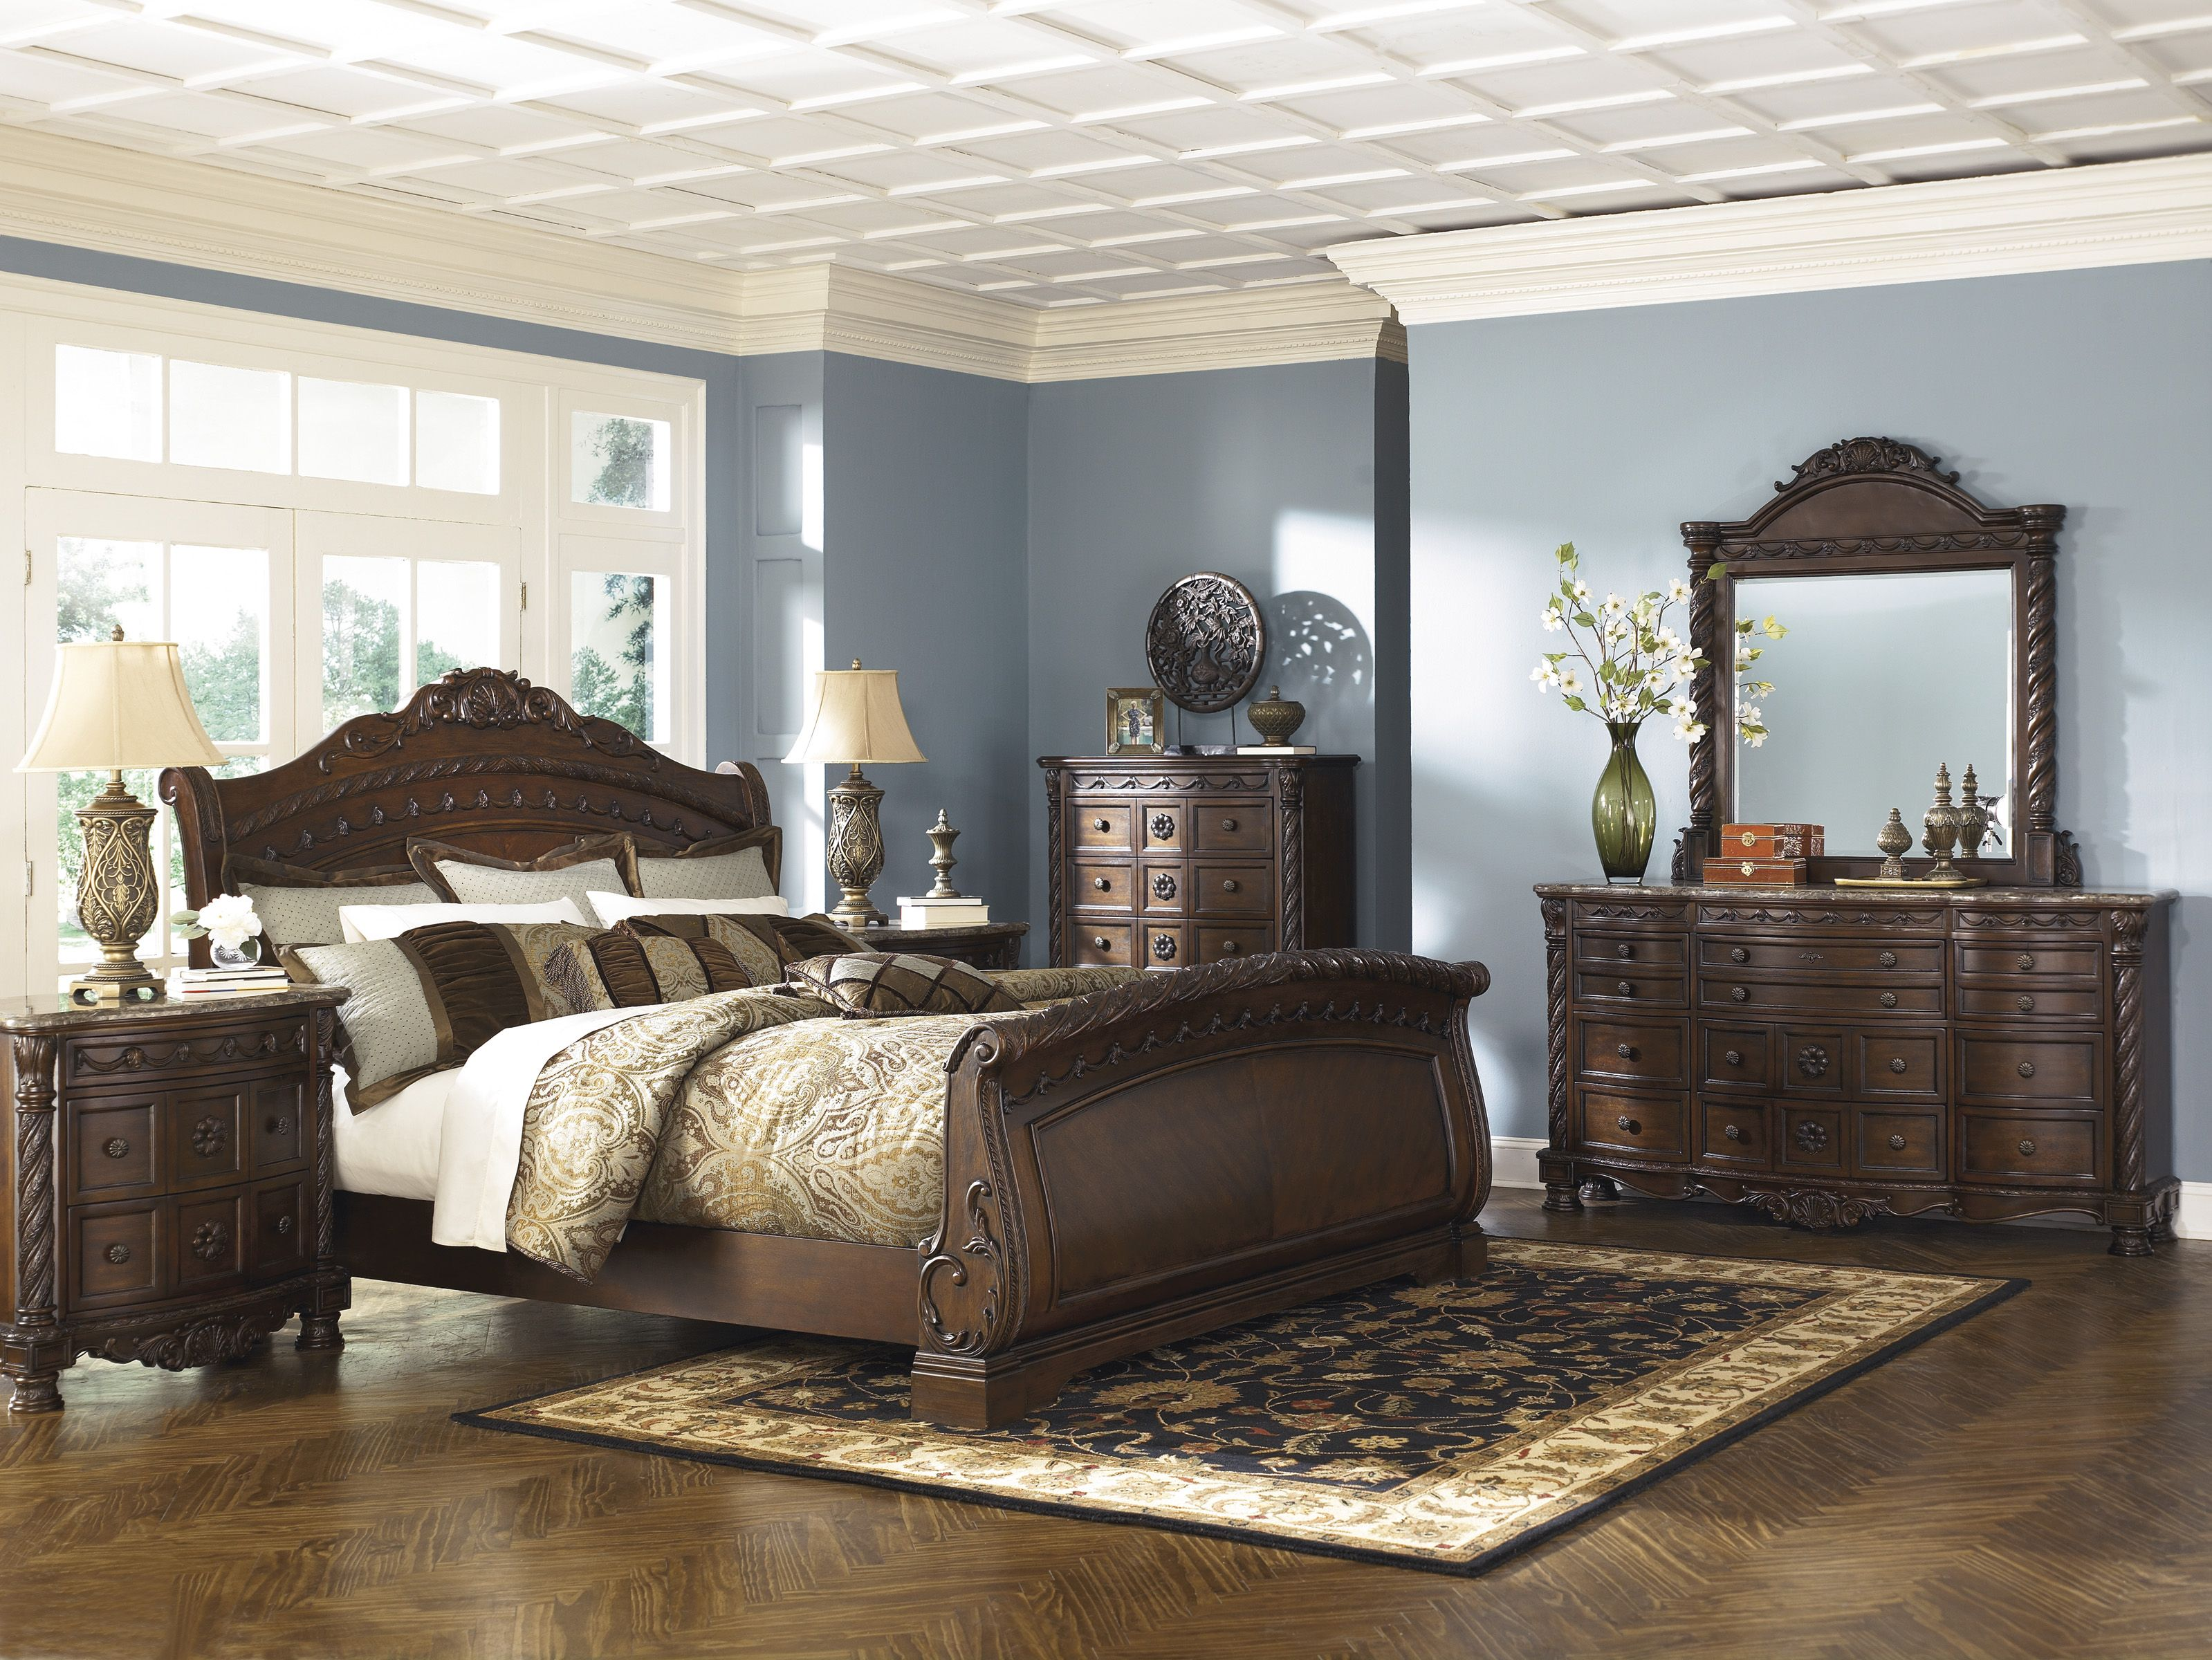 Northland Sleigh Bedroom Group Http Www Wgrfurniture Com Product